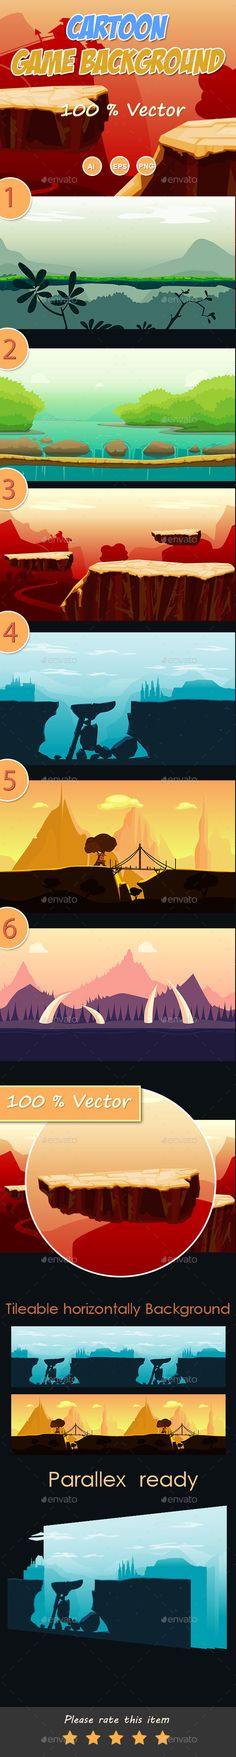 6 cartoon Game Background — Vector EPS #game background #app • Available here → https://graphicriver.net/item/6-cartoon-game-background/13464046?ref=pxcr